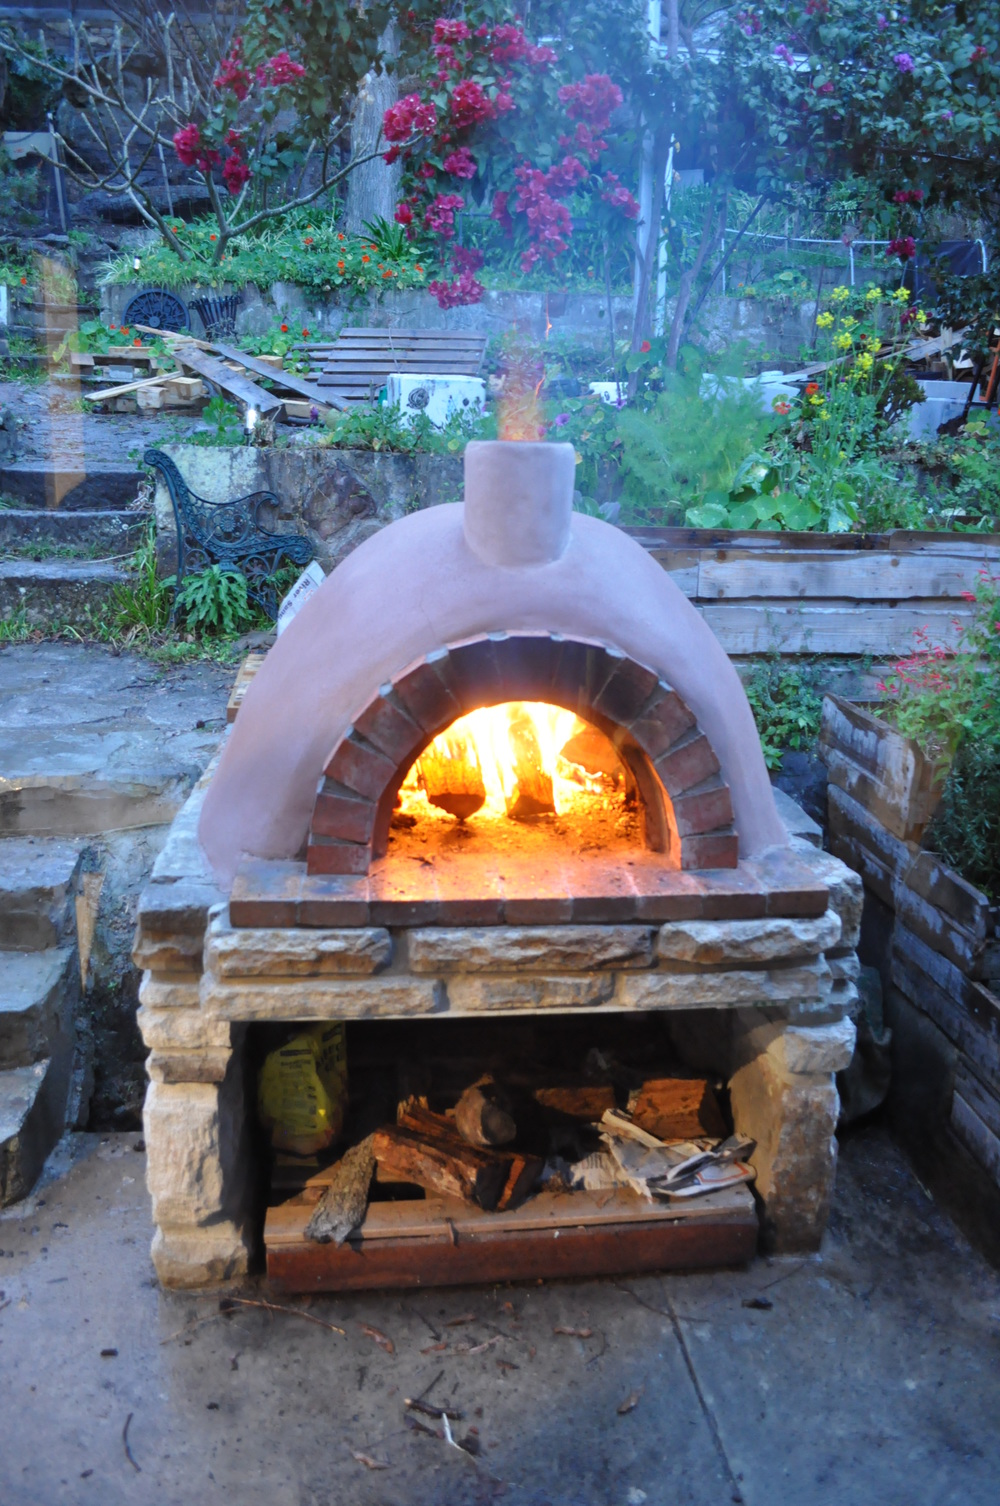 """Wood fired pizza oven"" by Paul Ryan"